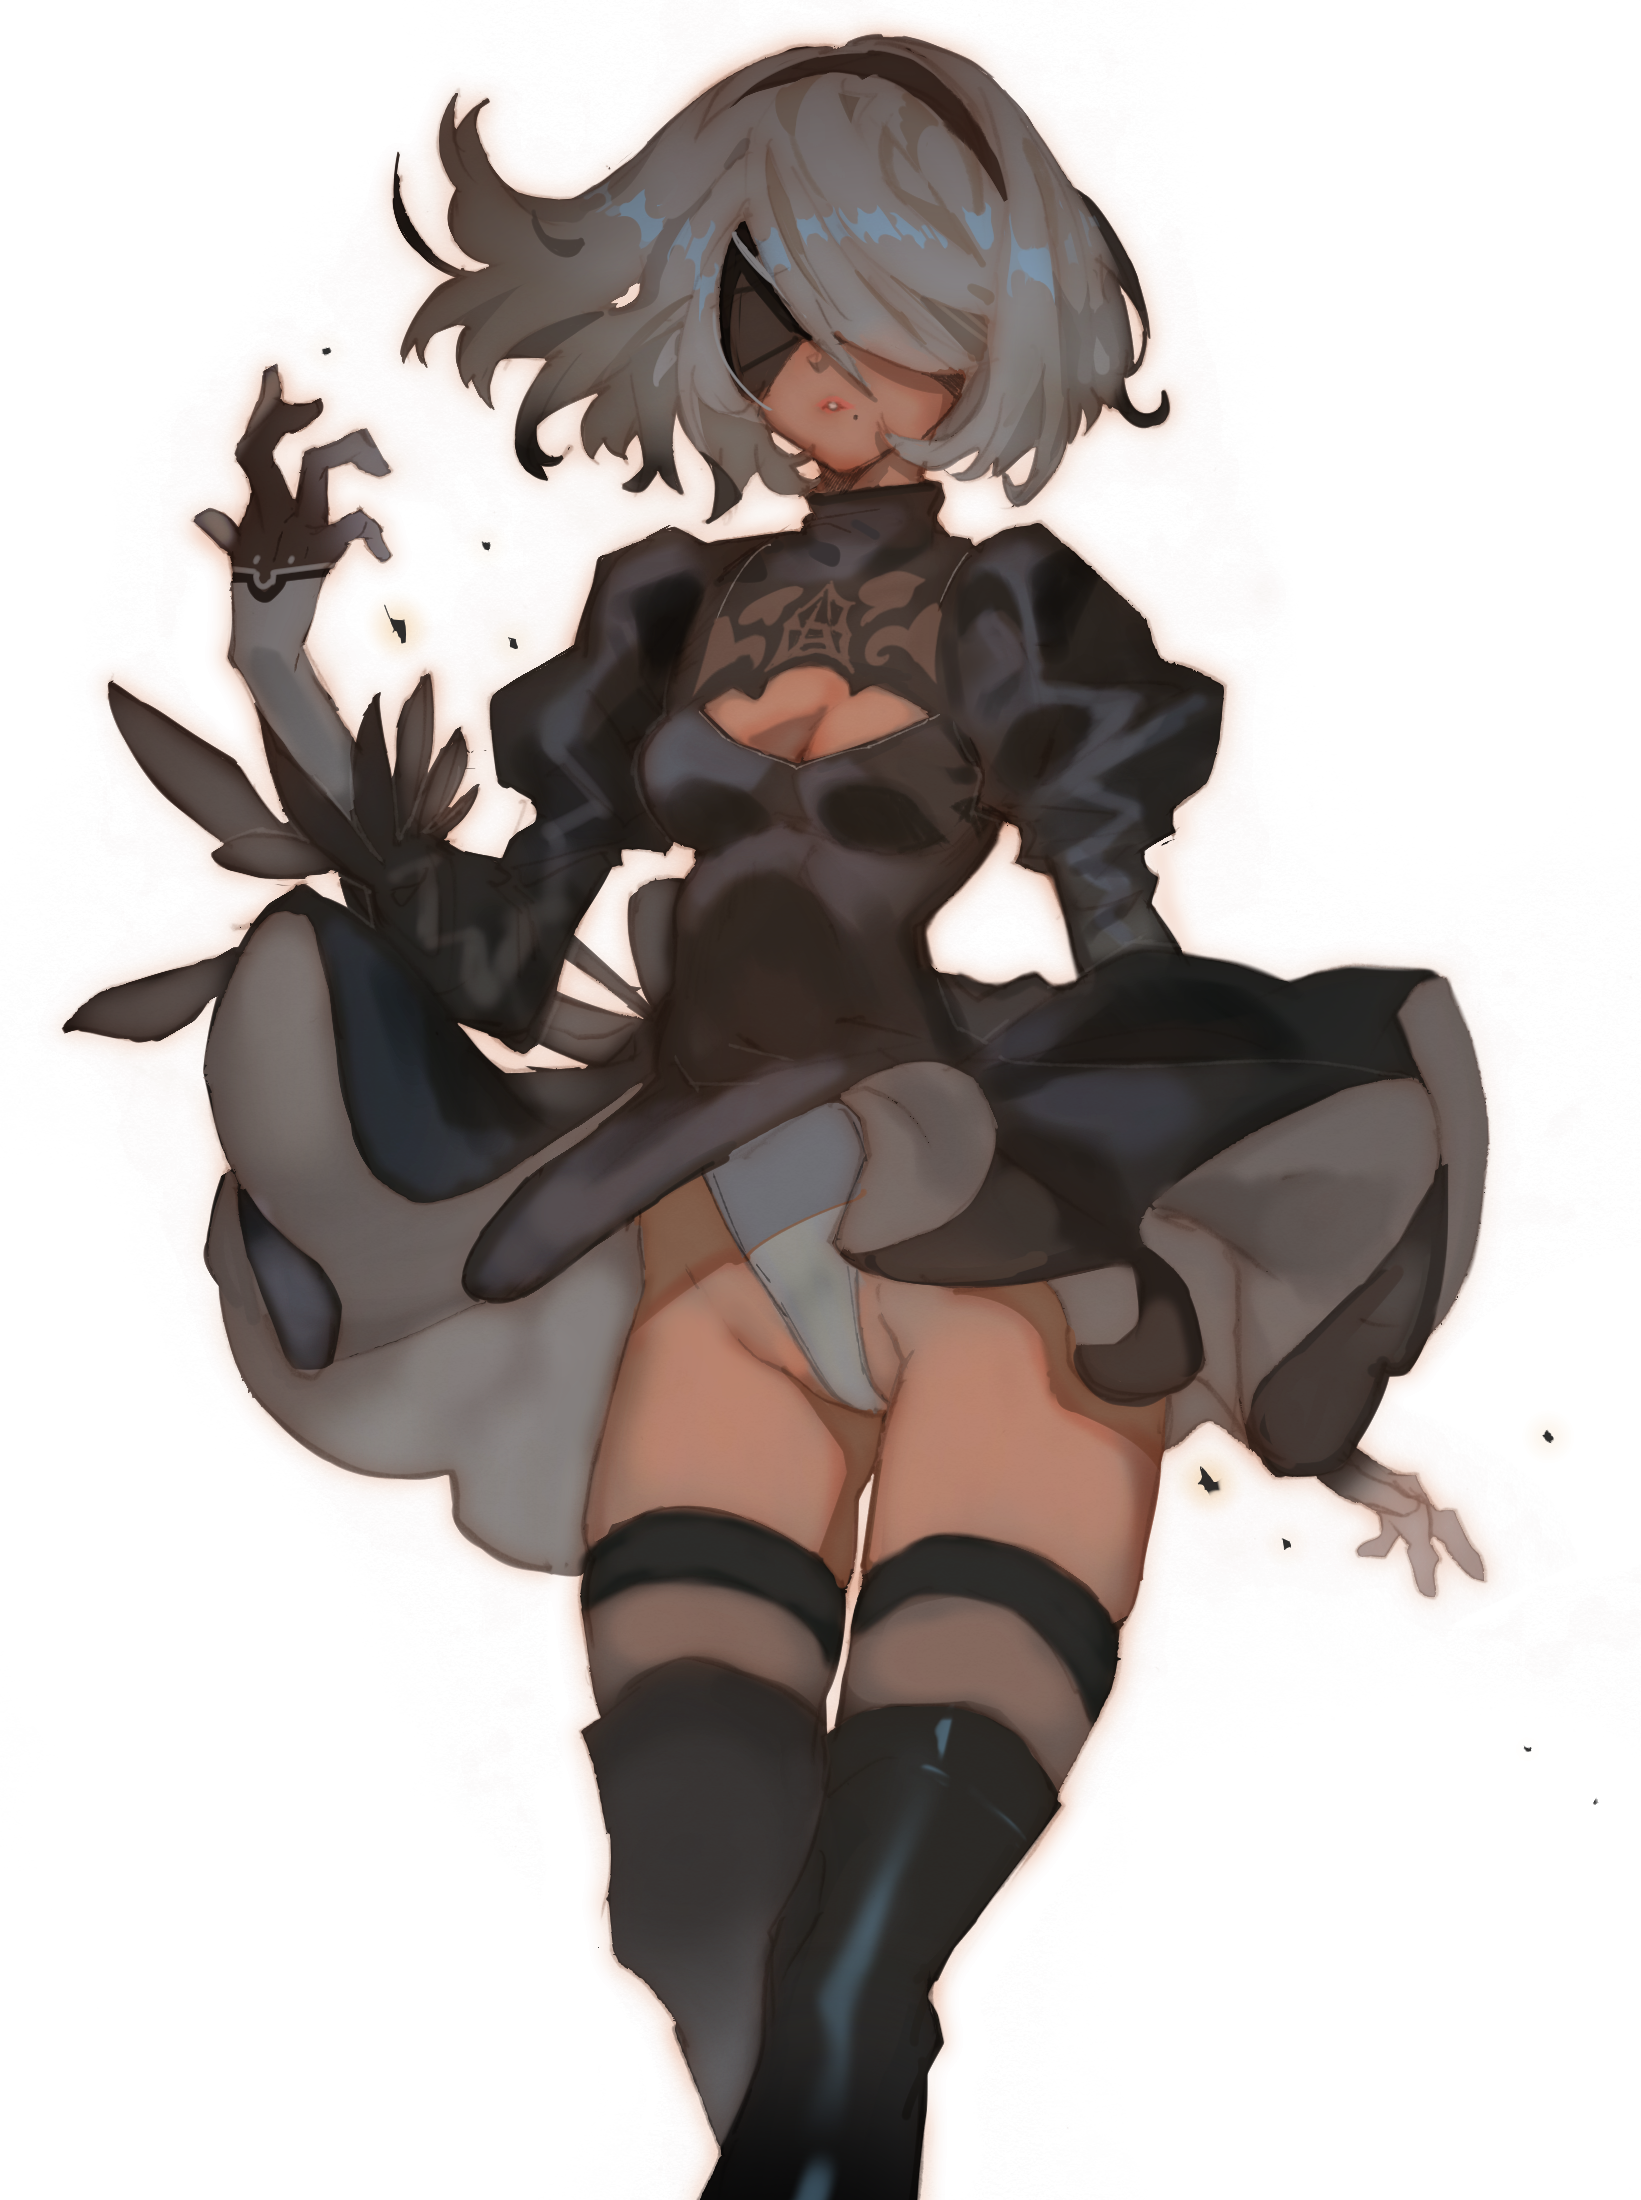 2b019.png